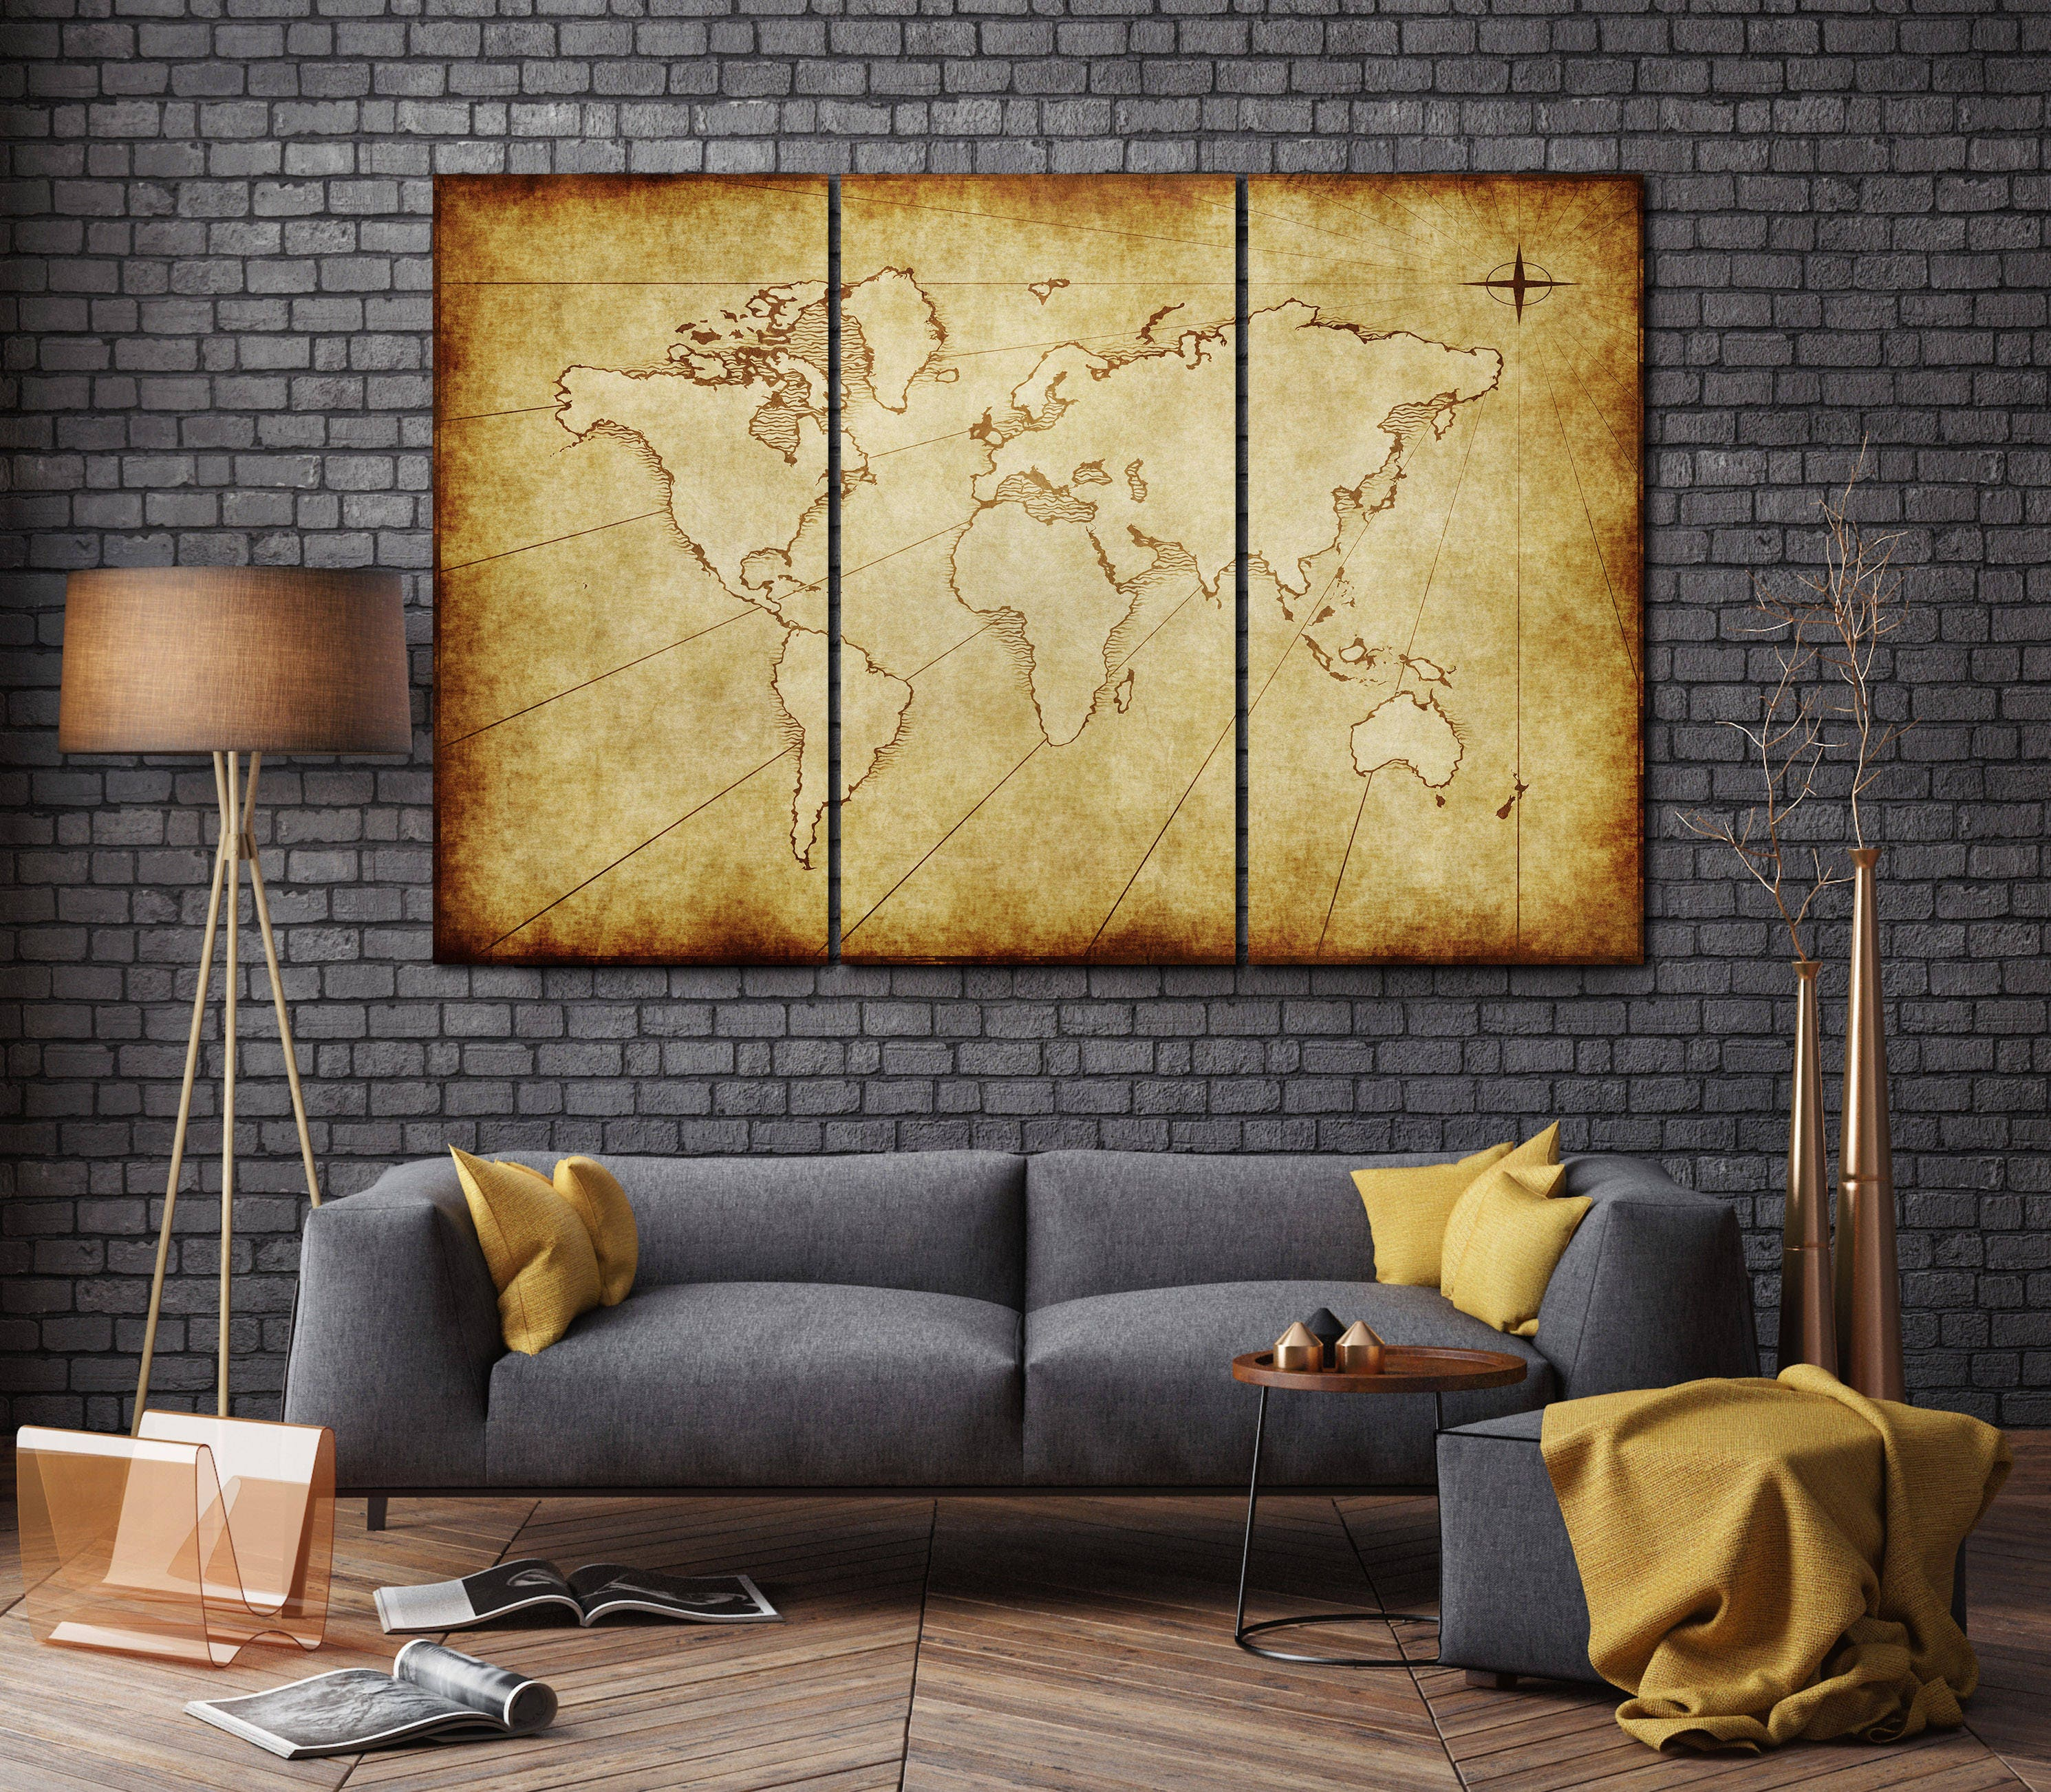 3 Pieces Old Grungy World Map Leather Print/Large Wall